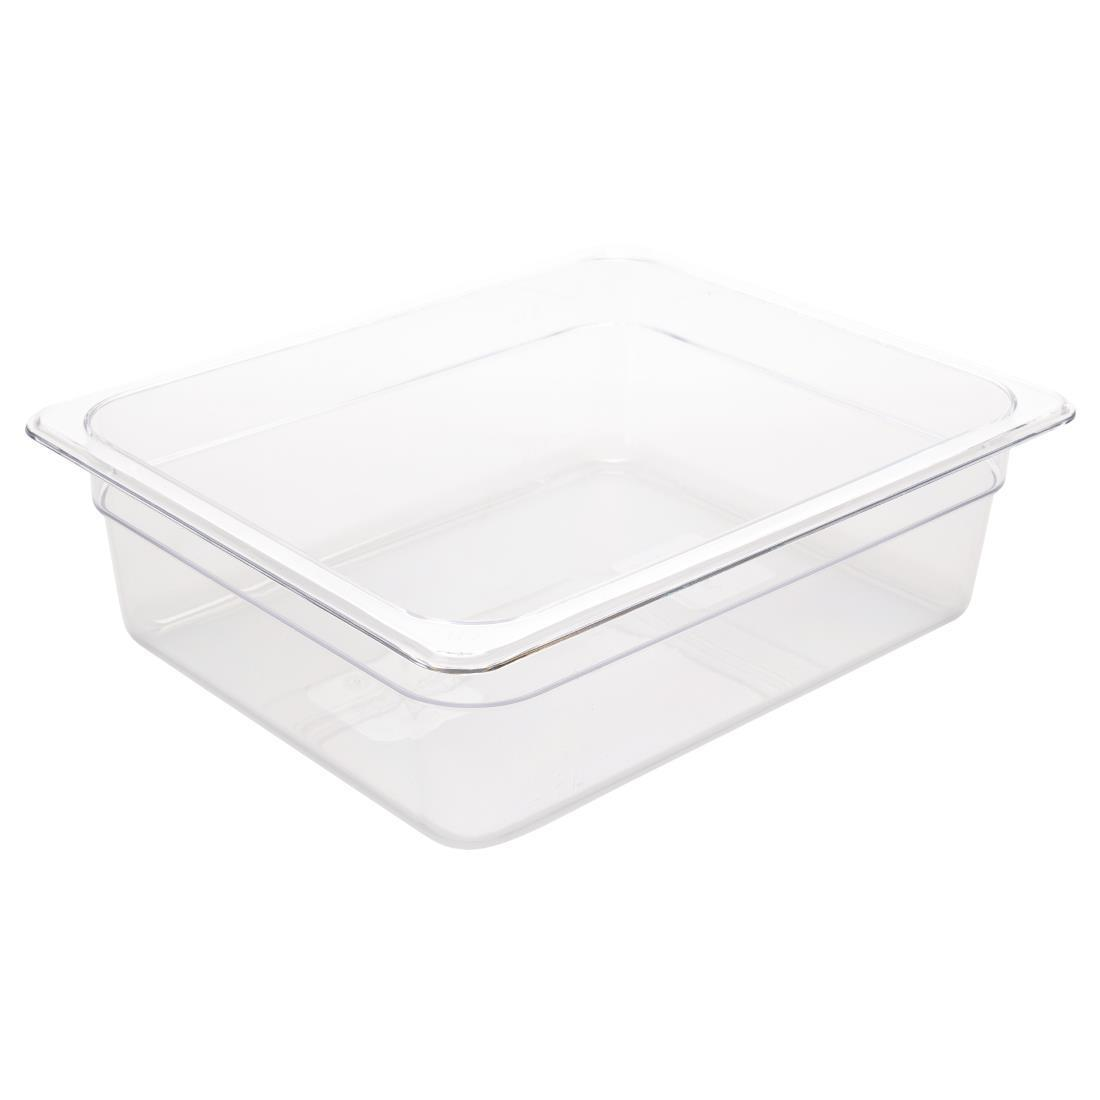 Vogue Polycarbonate 1/2 Gastronorm Container 100mm Clear - U229